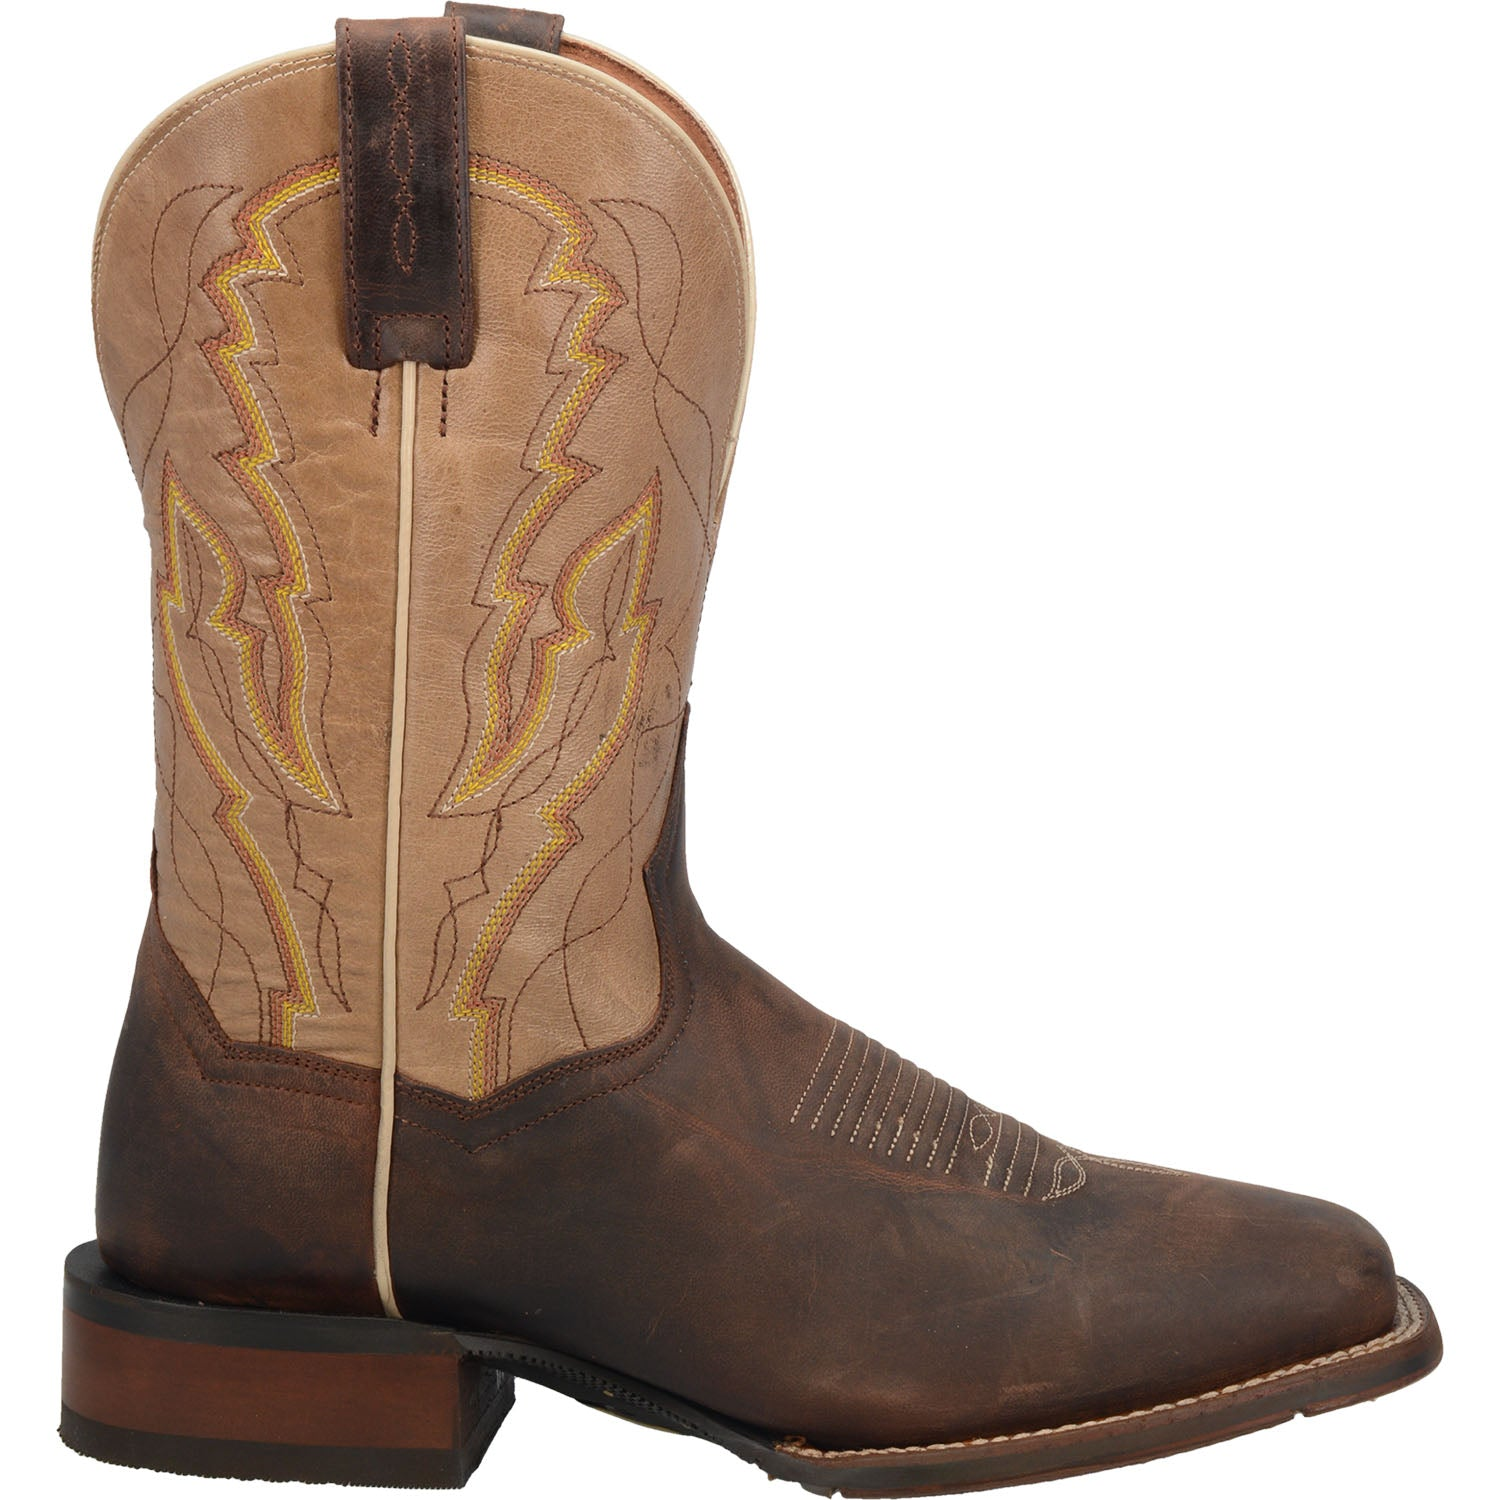 GARRISON LEATHER BOOT 15973511397418